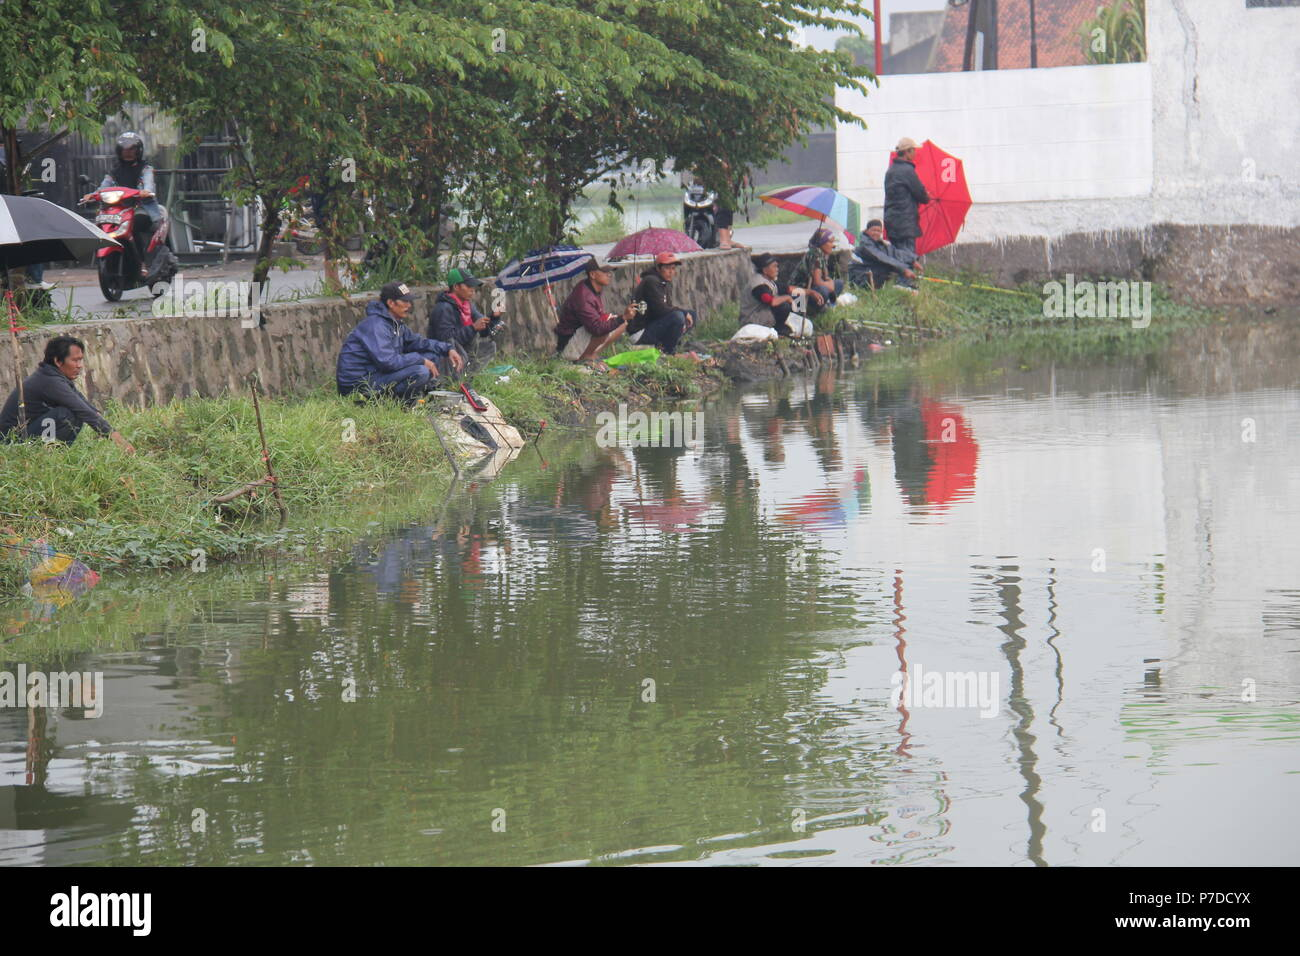 People fishing in a pond near housing in Bandung, Indonesia. - Stock Image